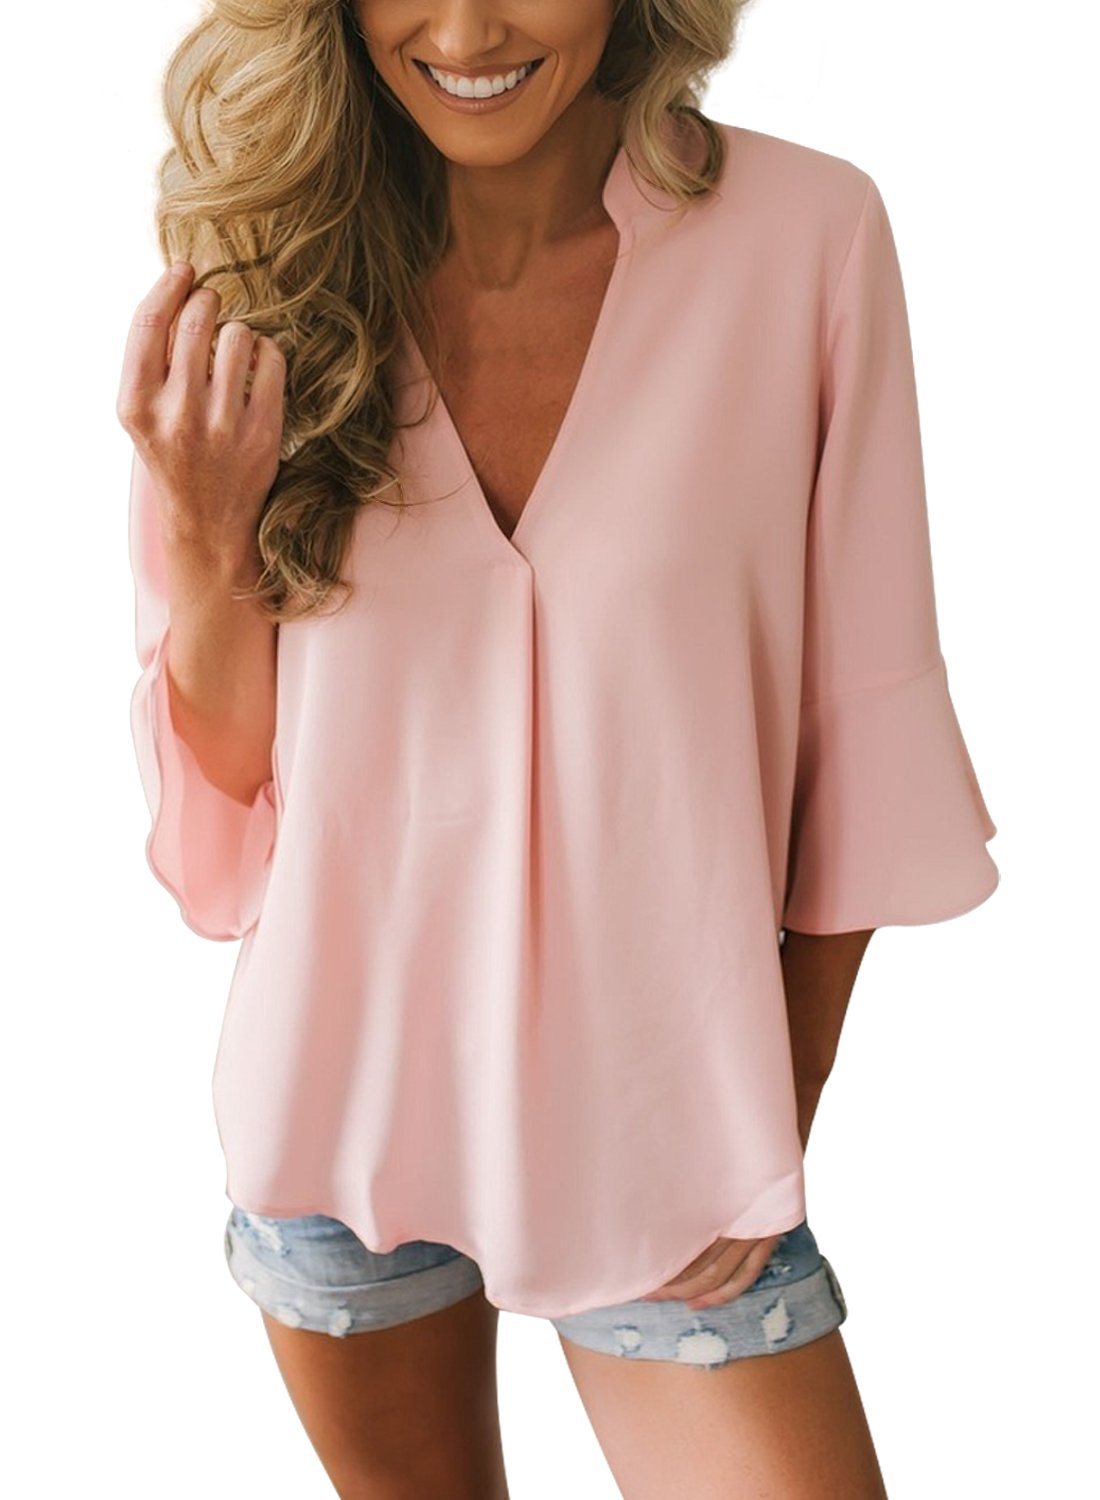 Dokotoo Womens Loose Solid Chiffon Flare Tops Summer V Neck 3 4 Sleeve Blouse Fashion Shirts Under 20 for Work Pink Medium